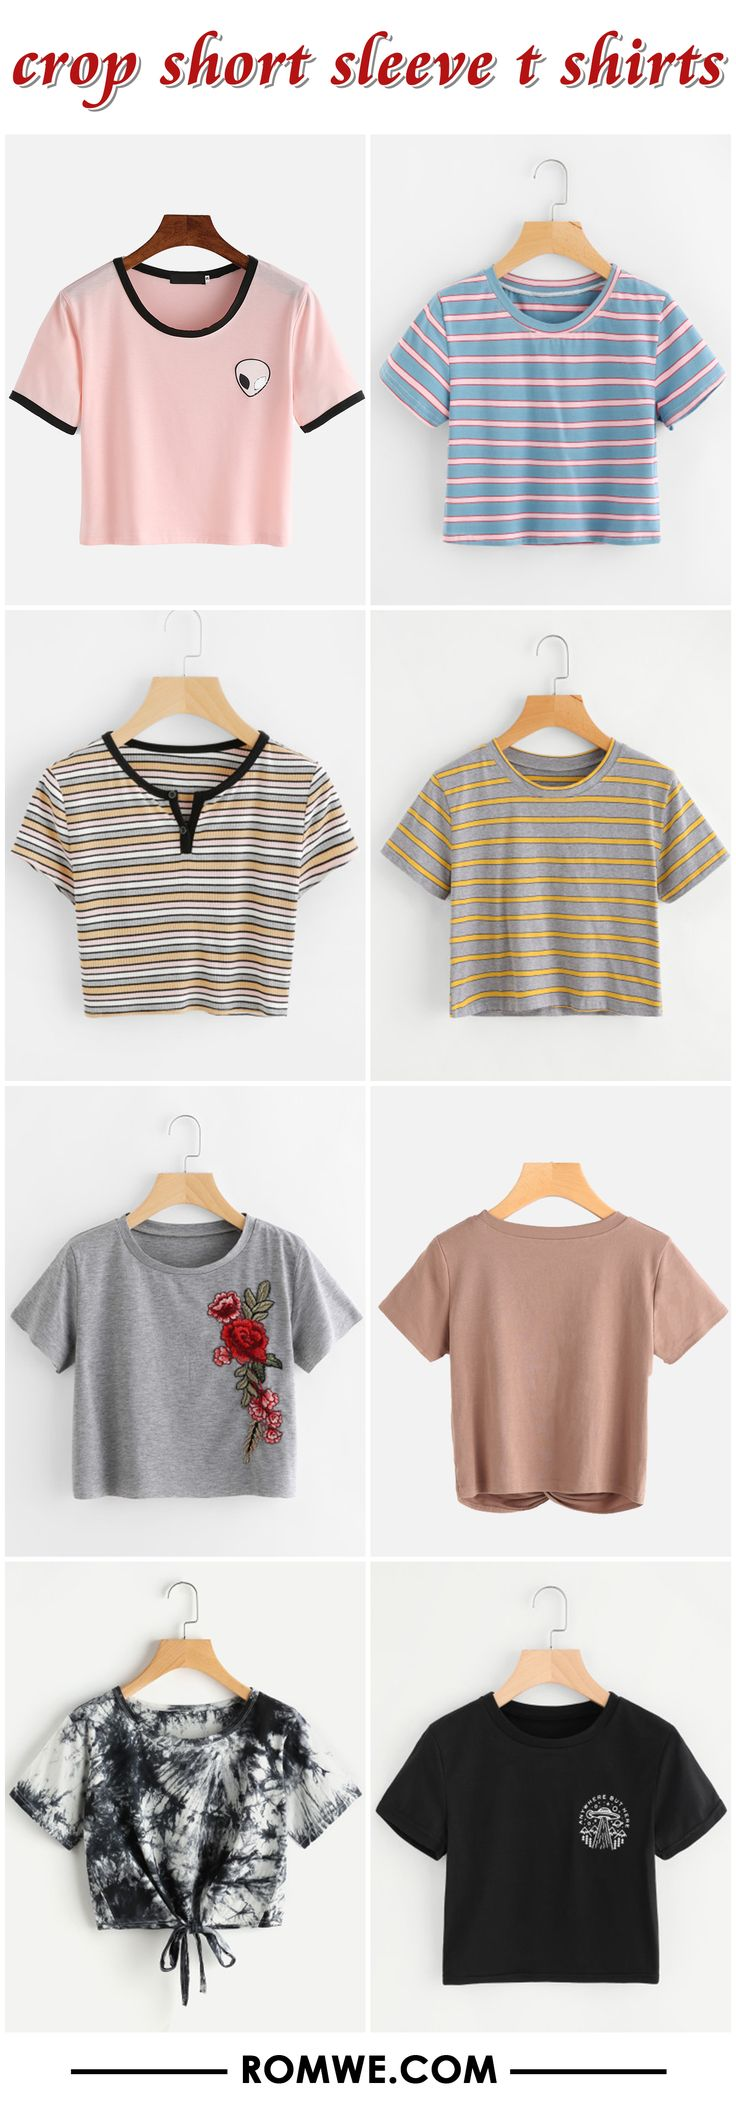 crop short sleeve t shirts from romwe.com